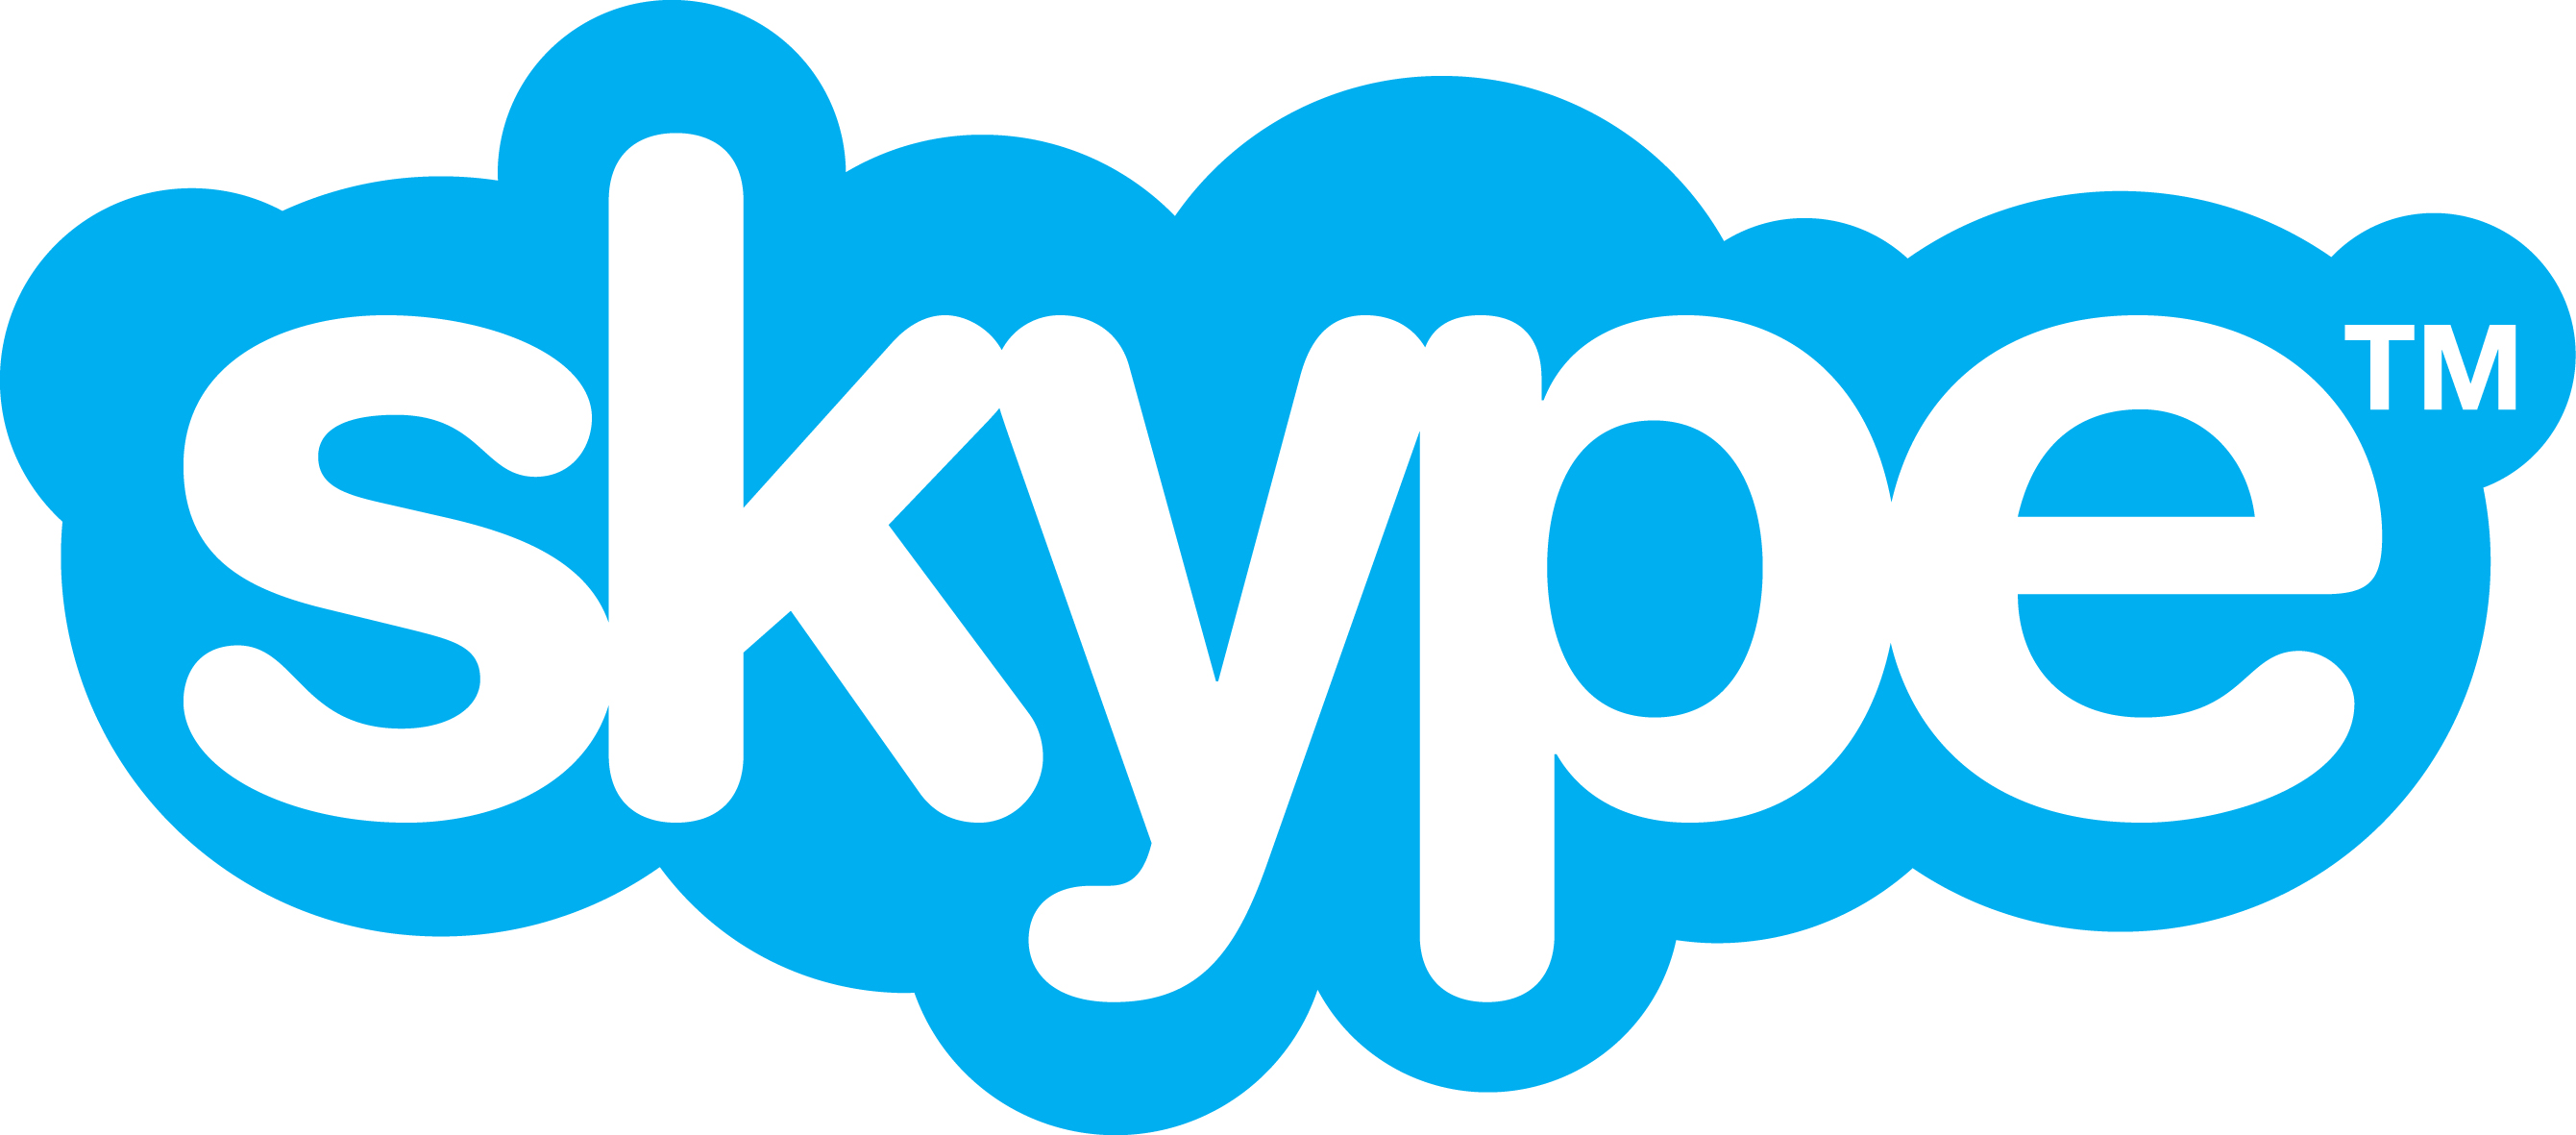 Skype New Service: Lost in Translation? - Image 1